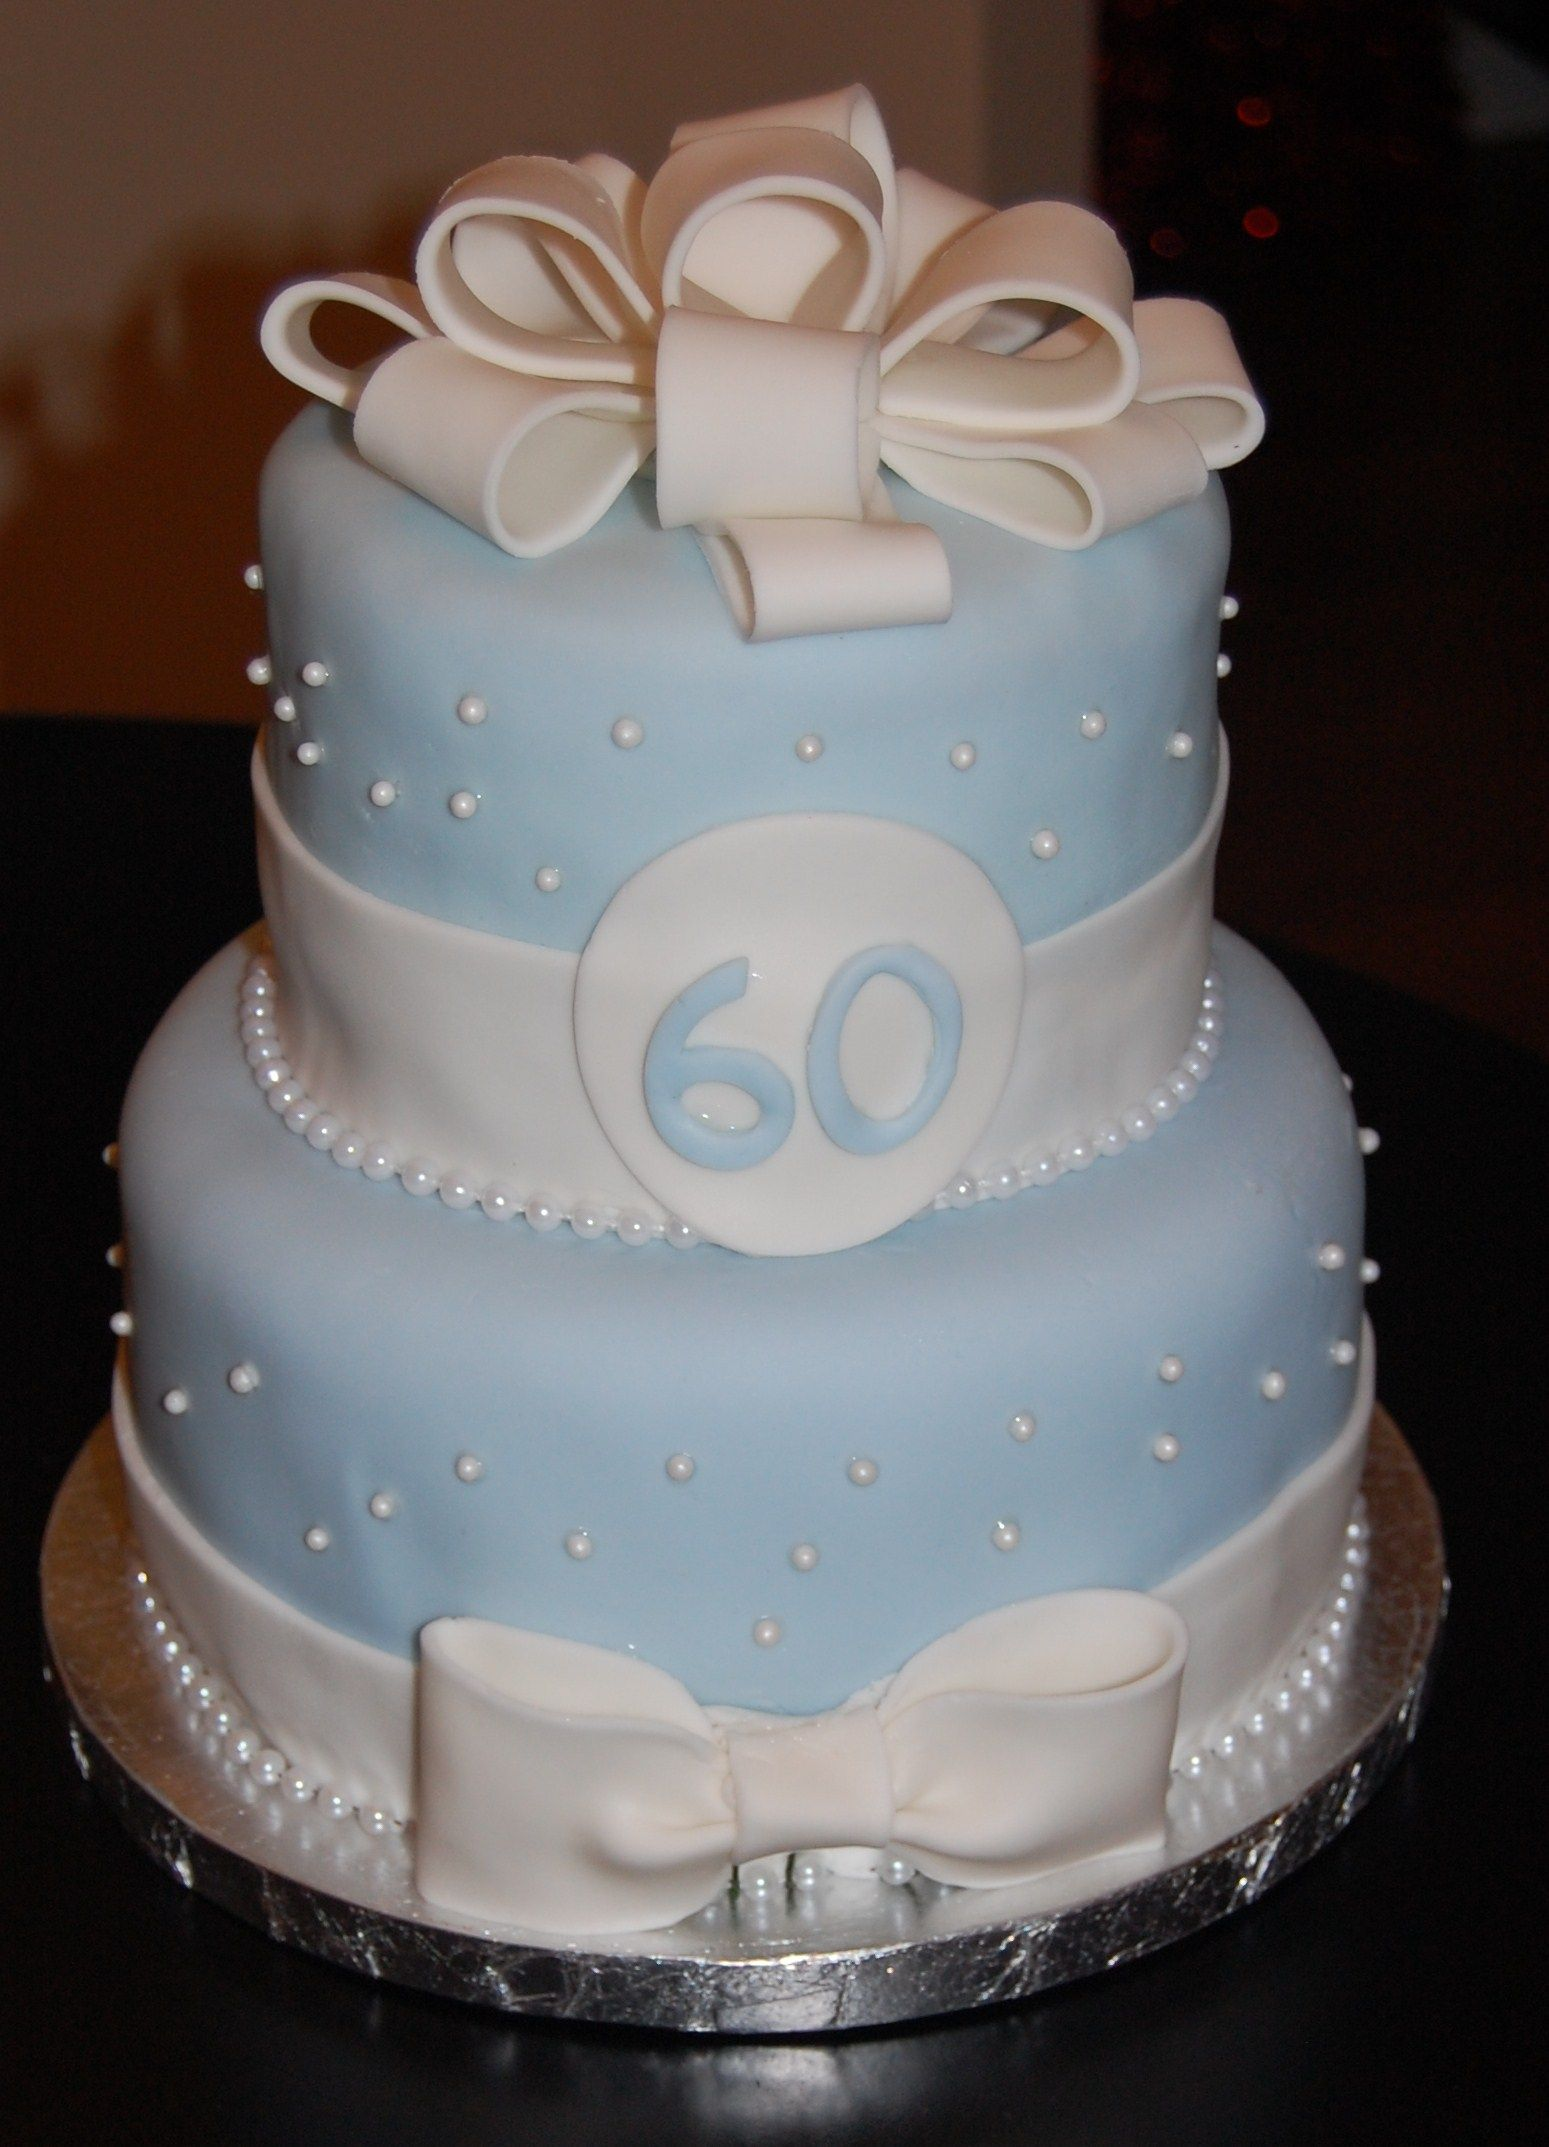 Cake Decorations For A 60th Birthday : 60th+birthday+cake+designs Cake Inspiration Pinterest ...